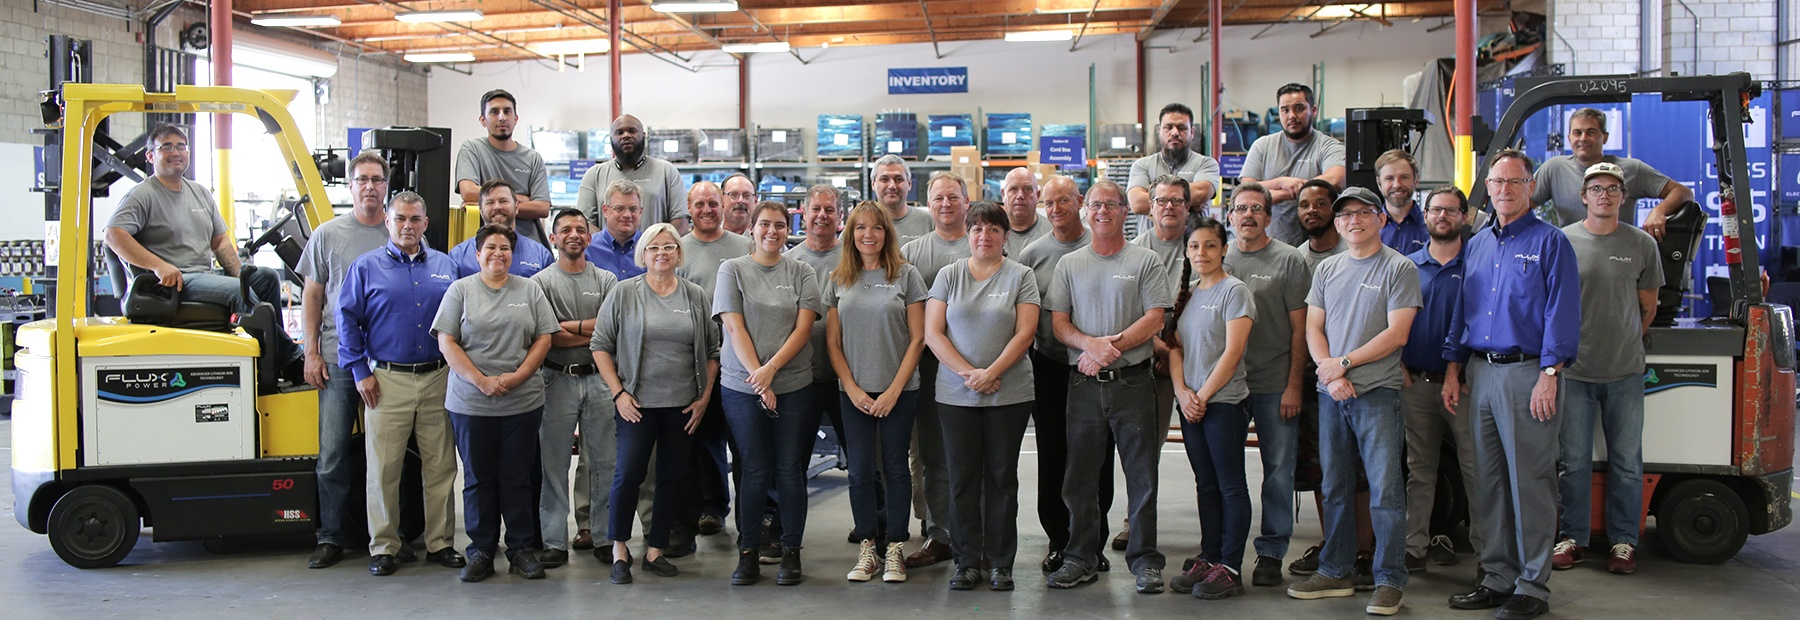 Flux-Power-company-employees